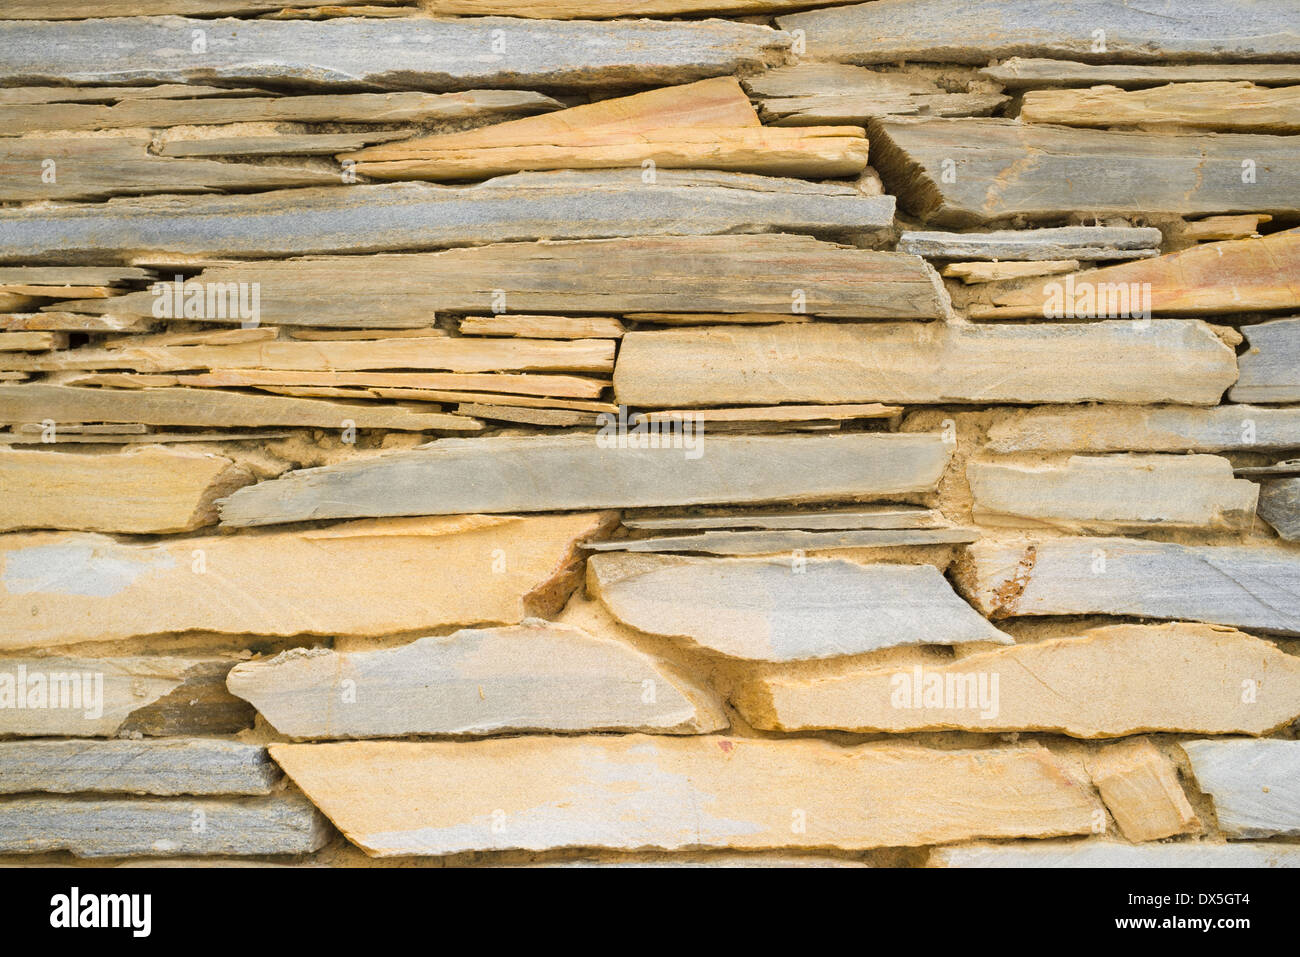 Slate Wall Cladding Stock Photos & Slate Wall Cladding Stock Images ...